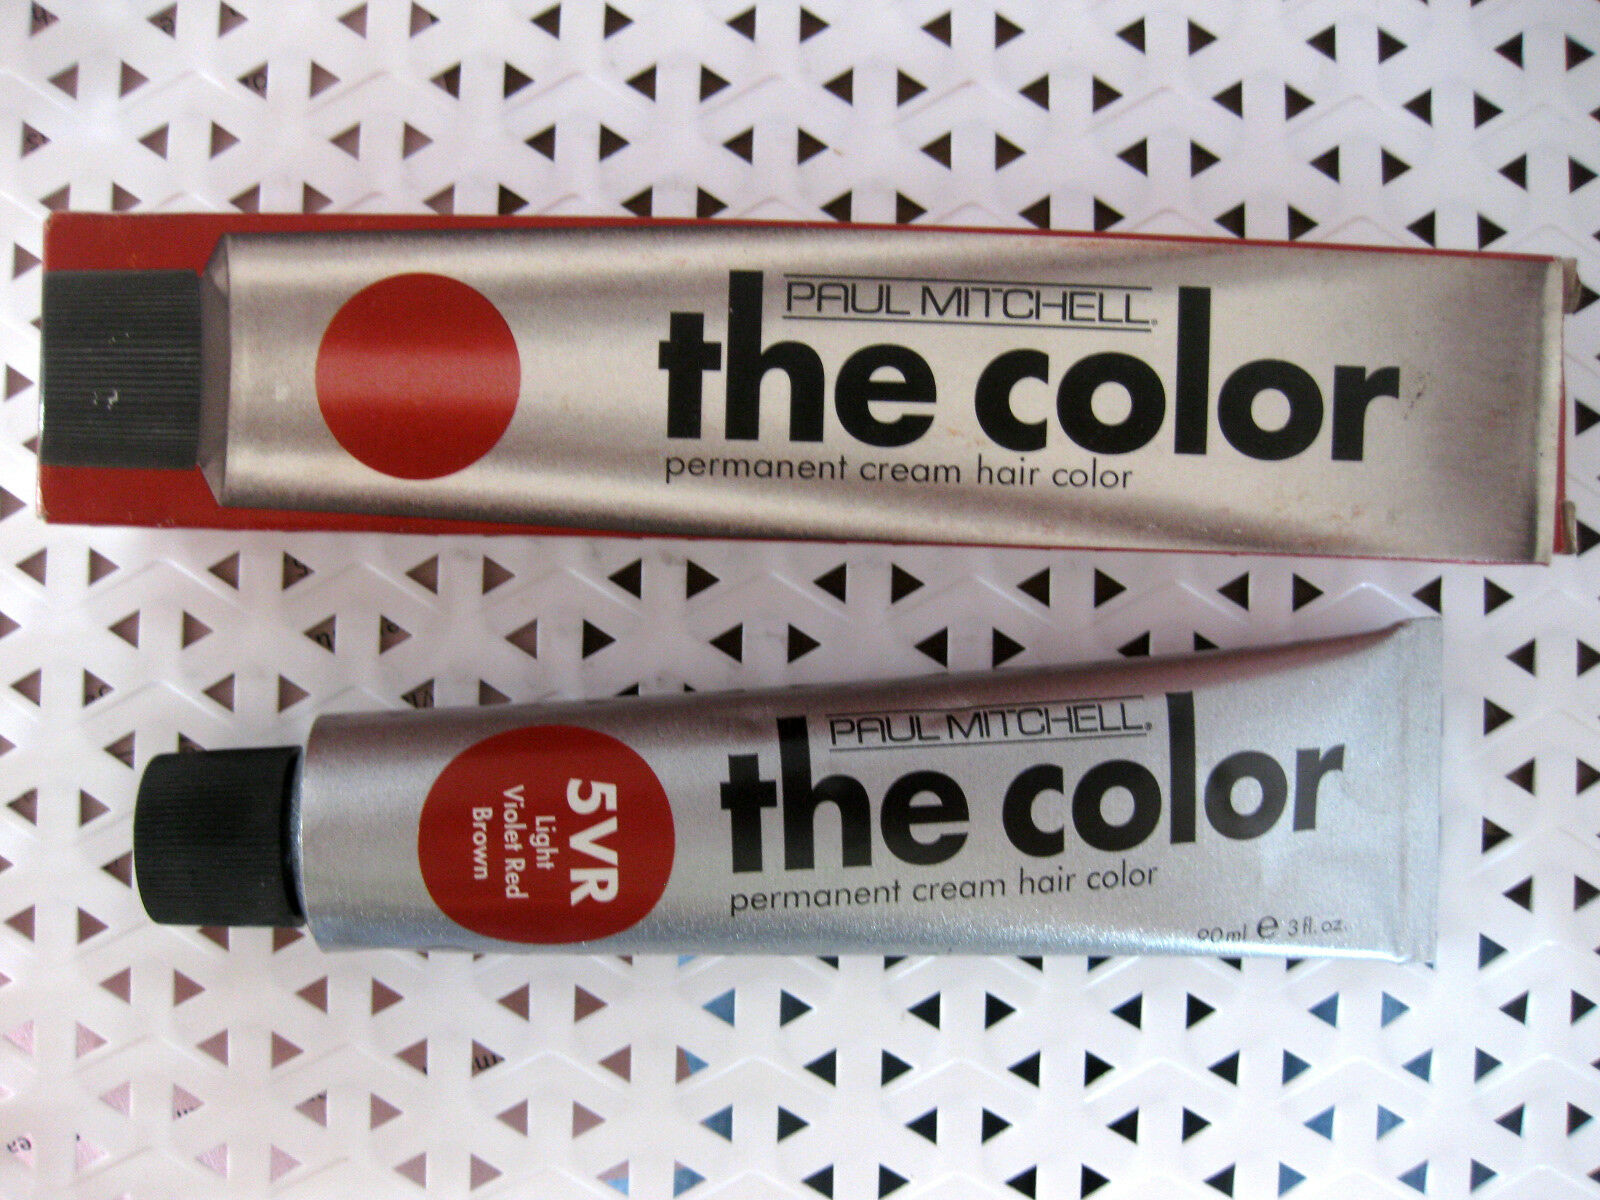 Paul Mitchell The Color Permanent Cream Hair Color 3vr Violet Red Ebay